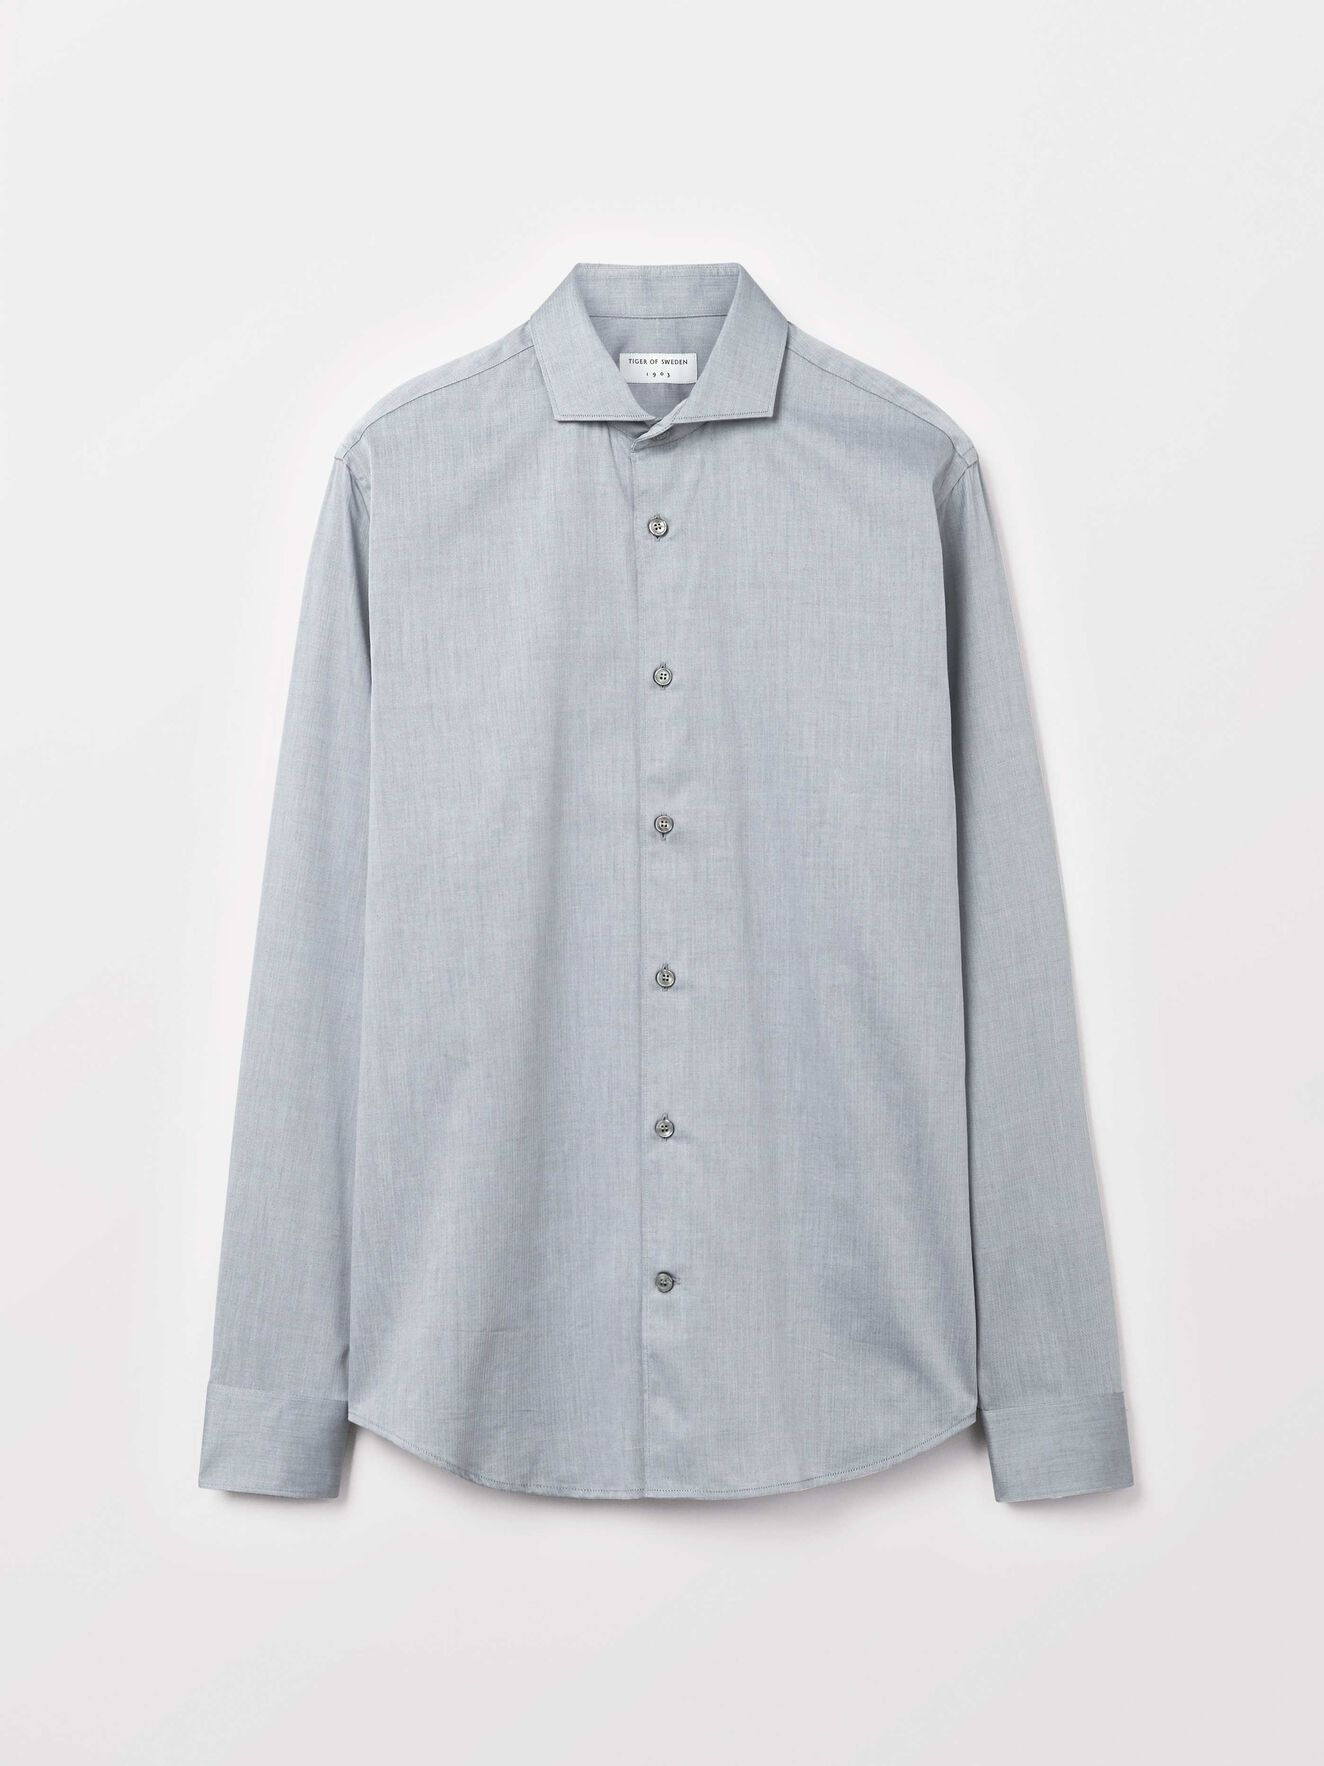 Farrell 5 Shirt in Med Grey Mel from Tiger of Sweden